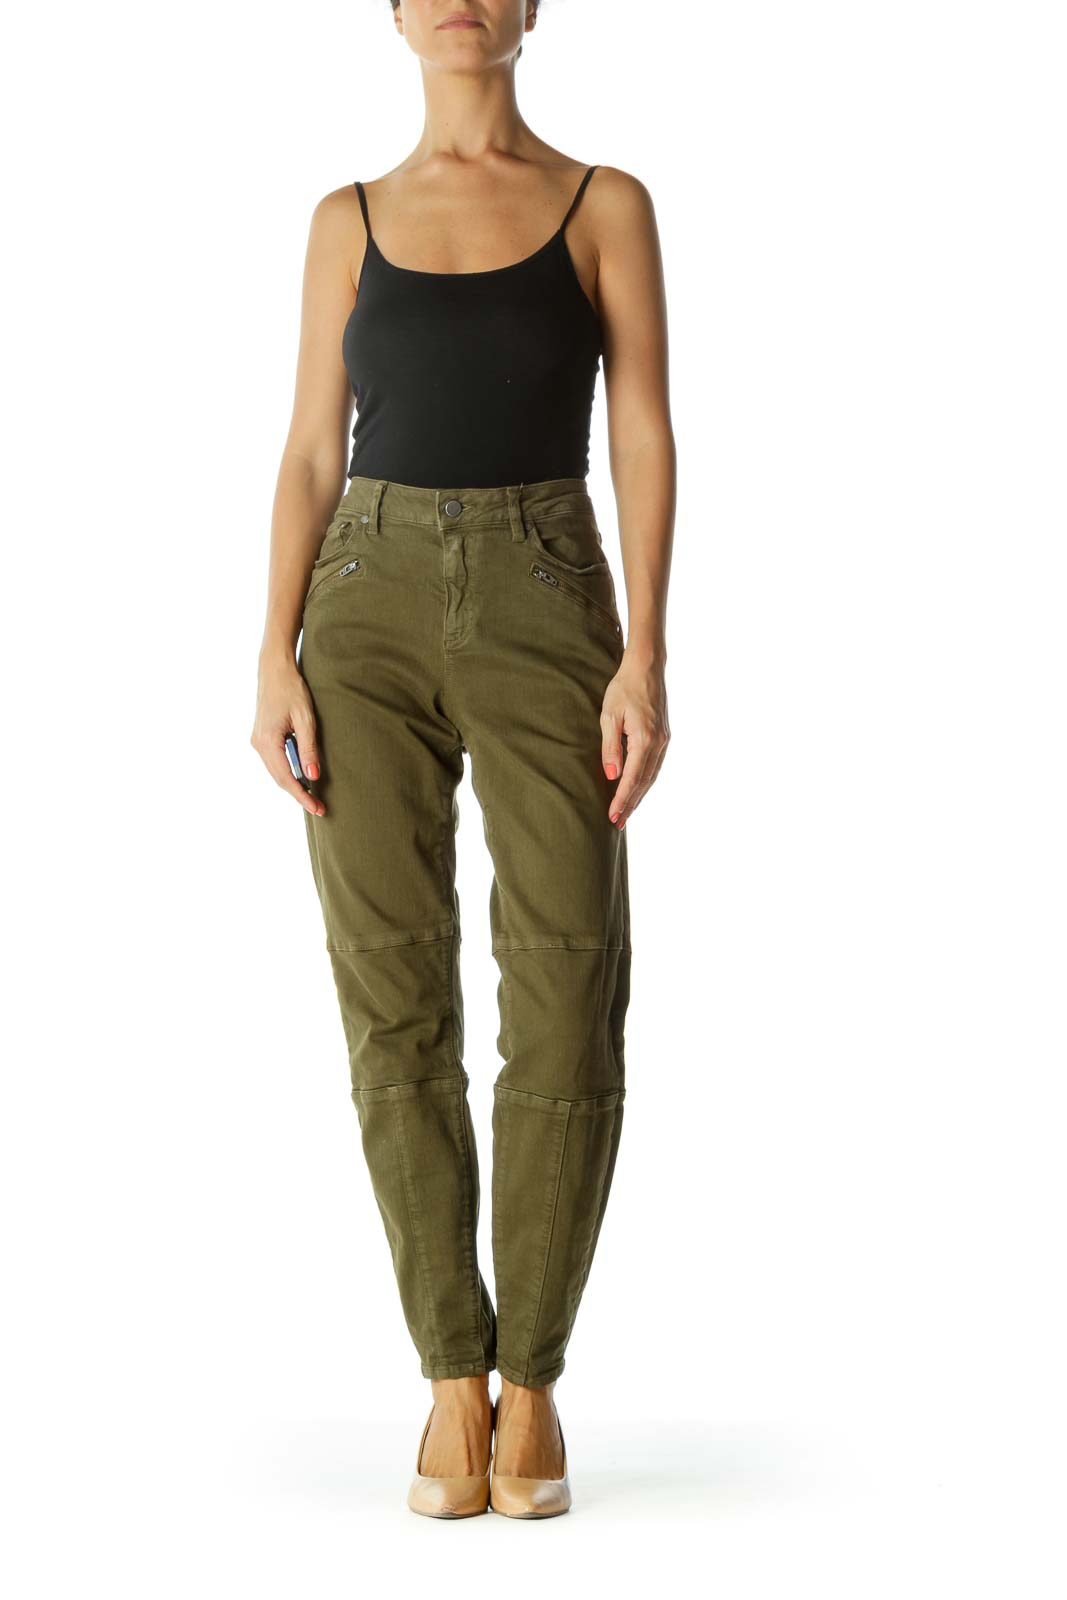 Olive Green Zipper-Details Stretch Tapered Pants